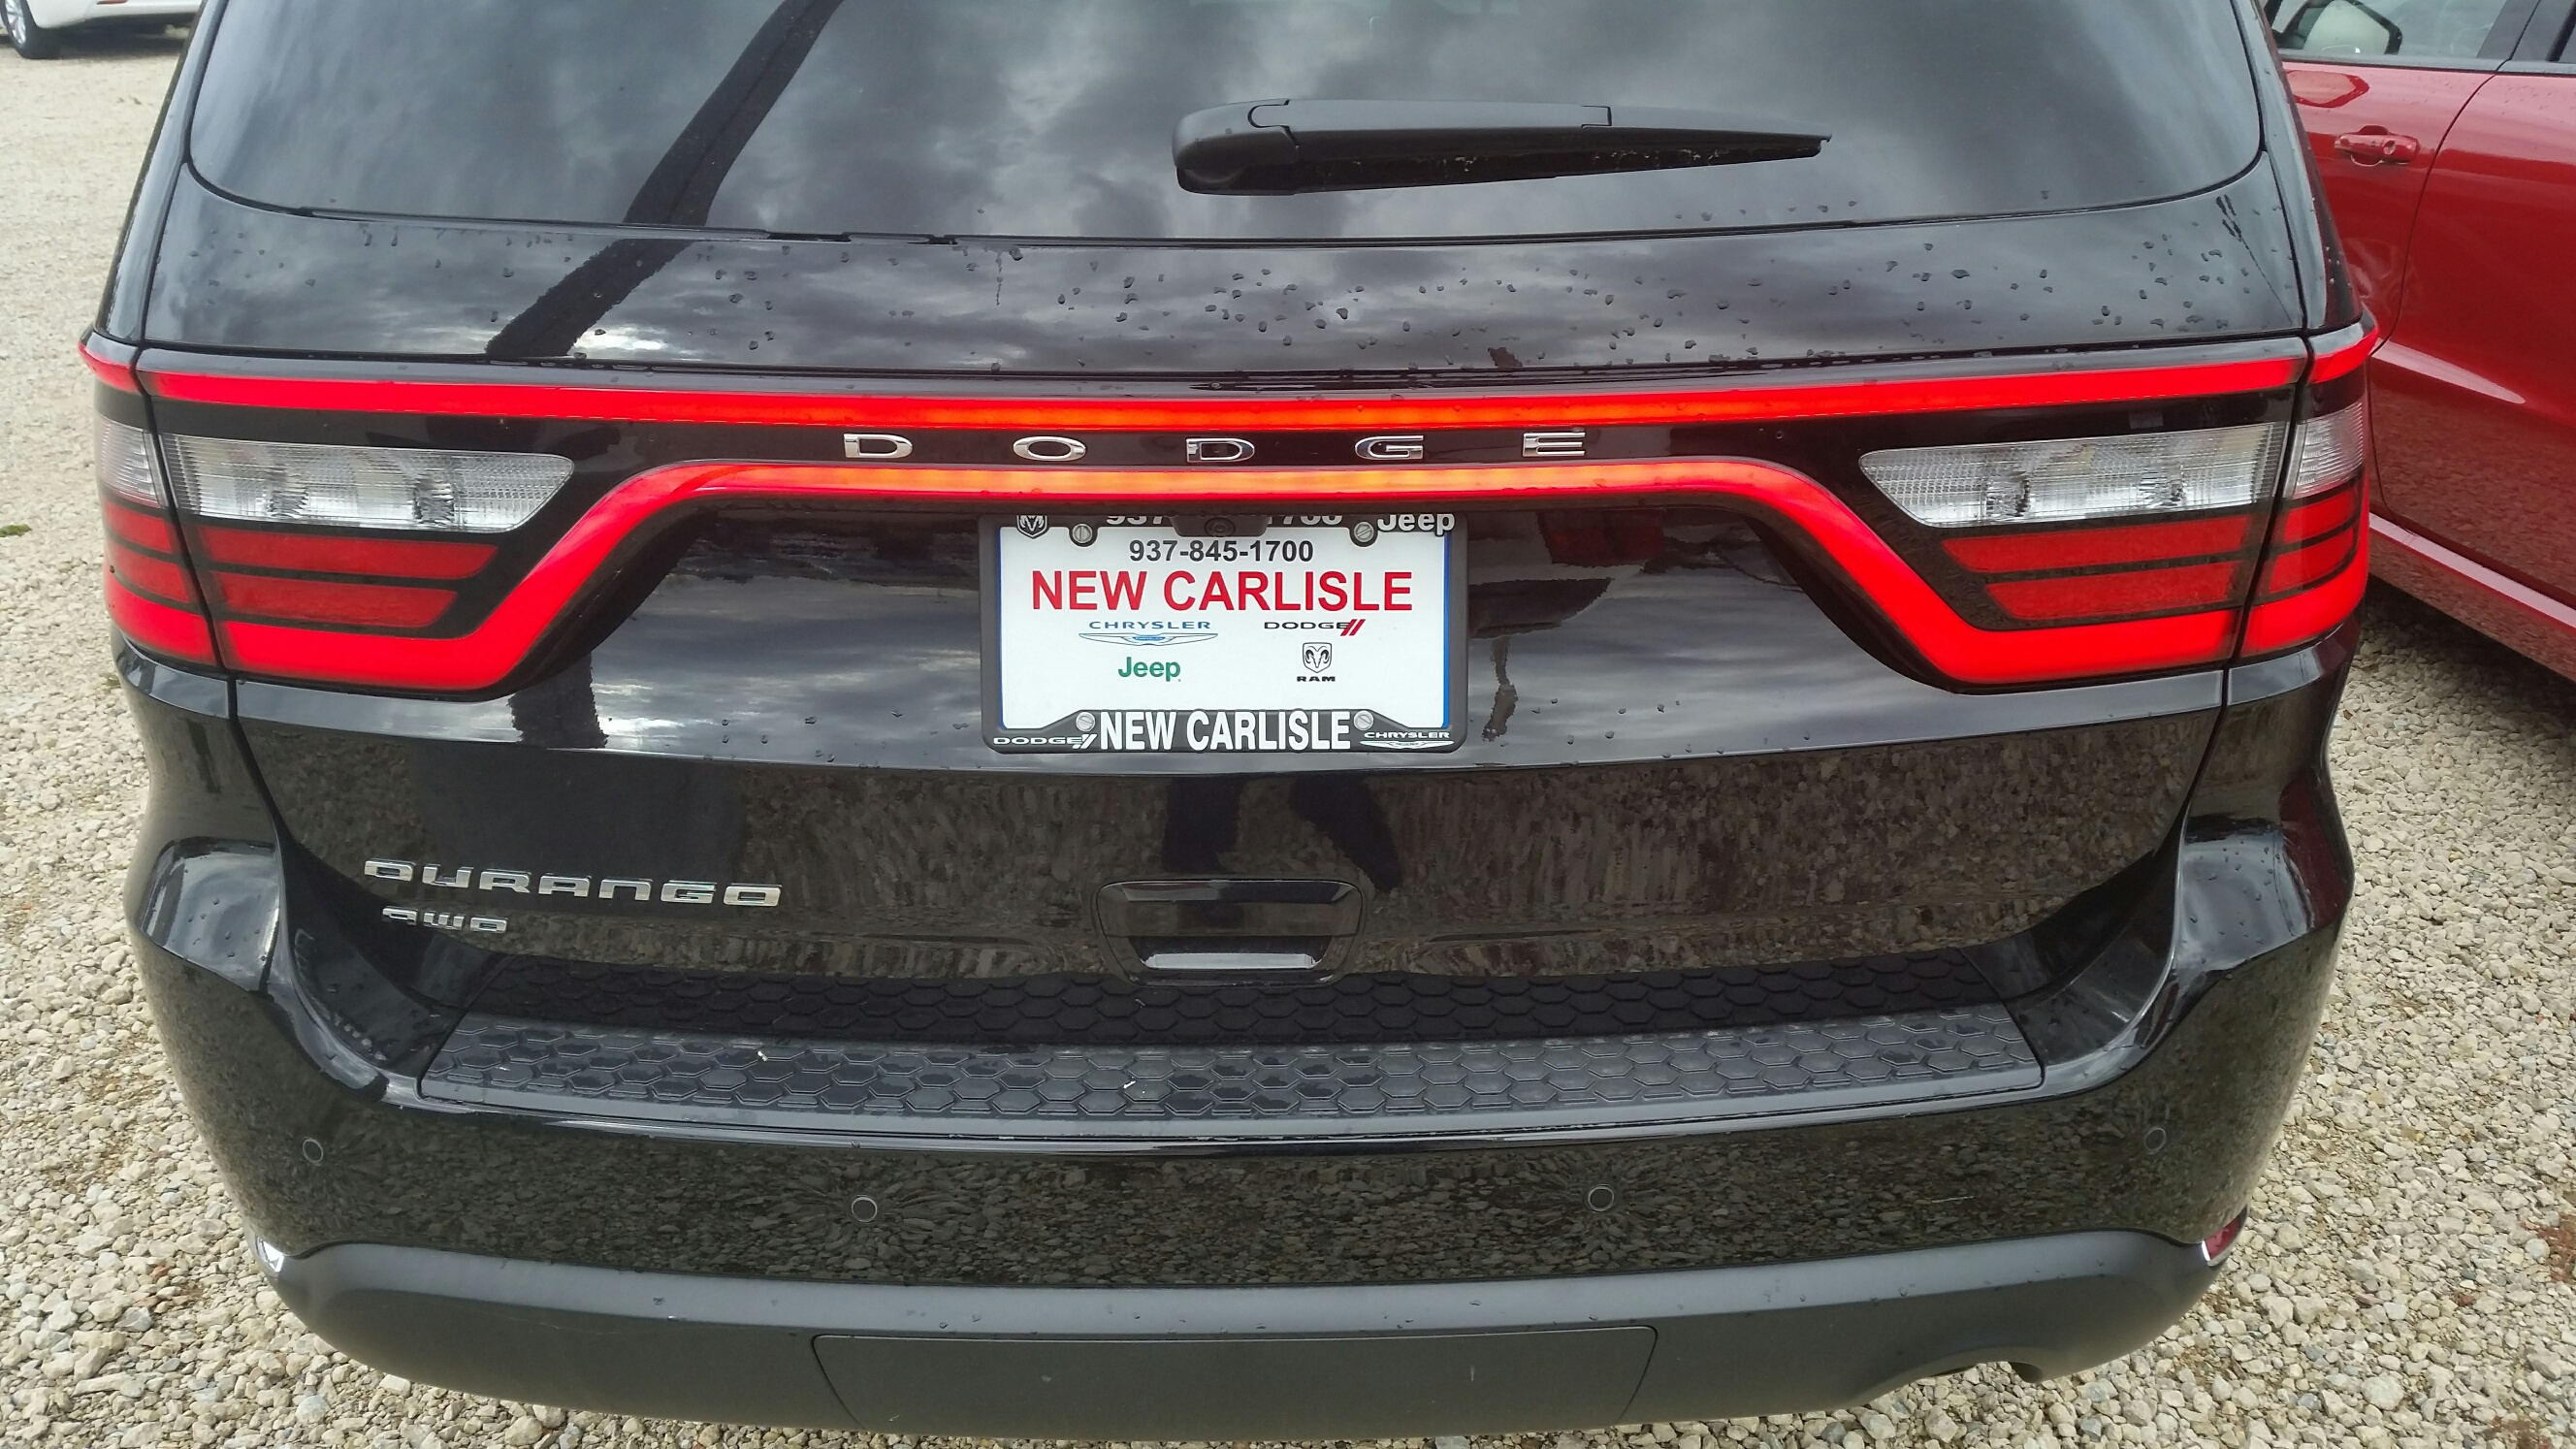 Durango tail light